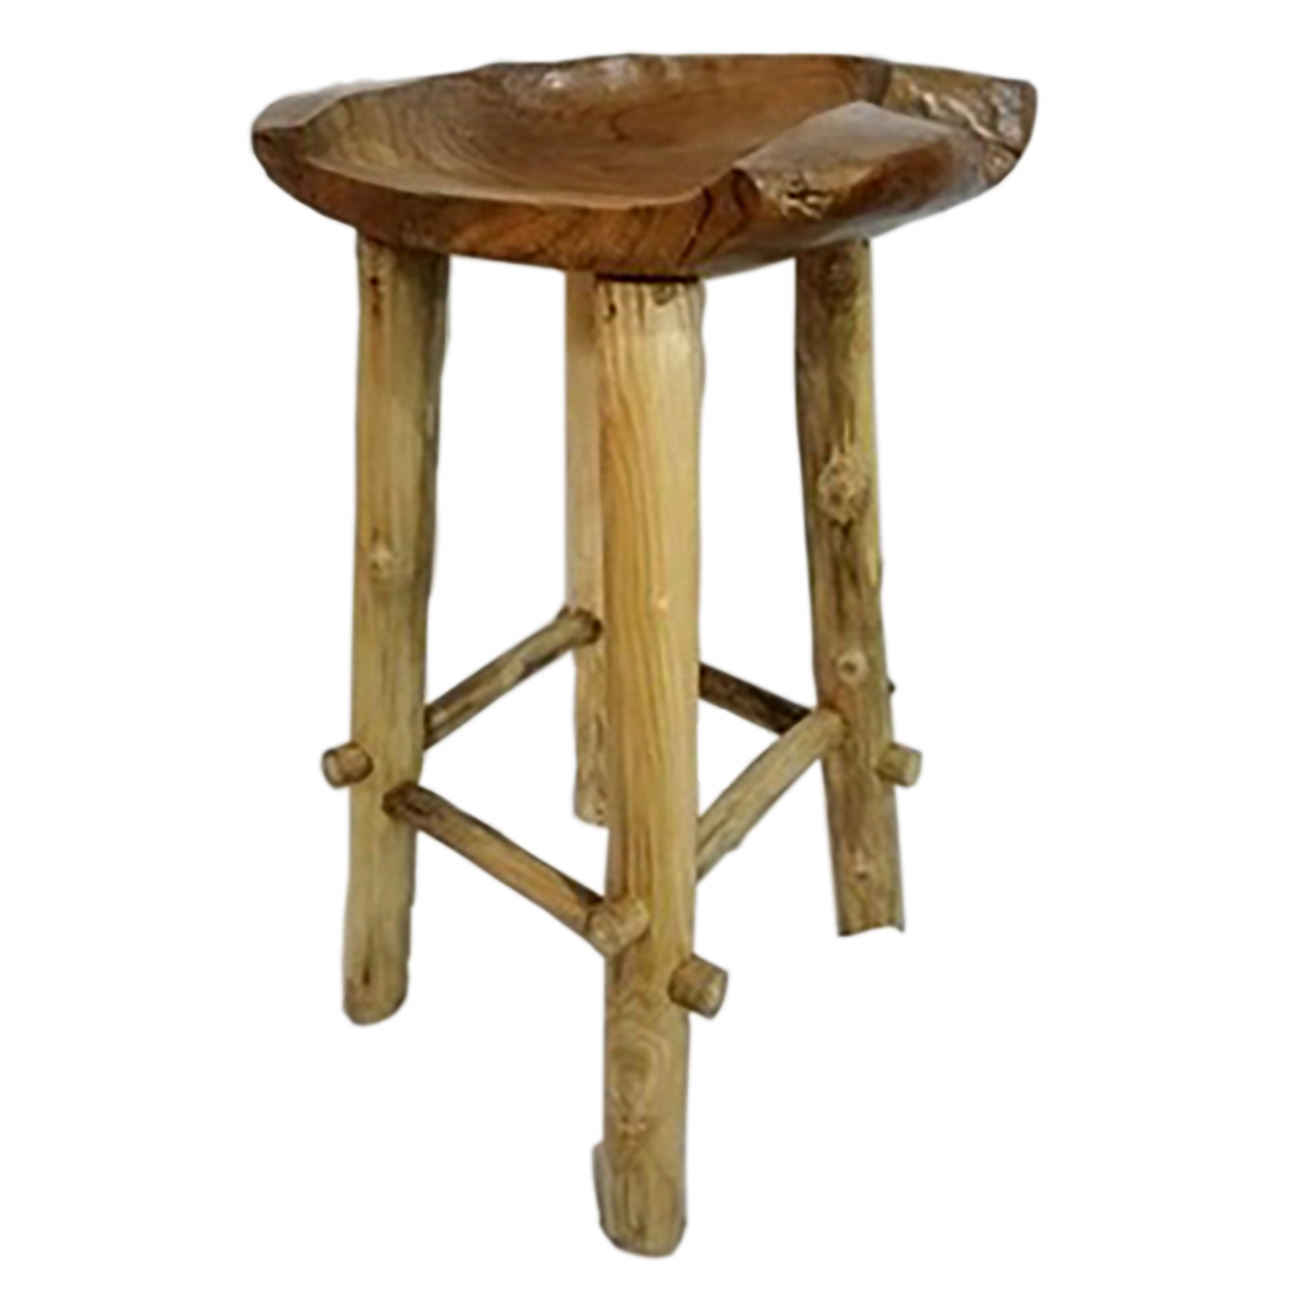 High Quality Bar Stool Bowl Pang Teak Wood Stool For Comercial Stool